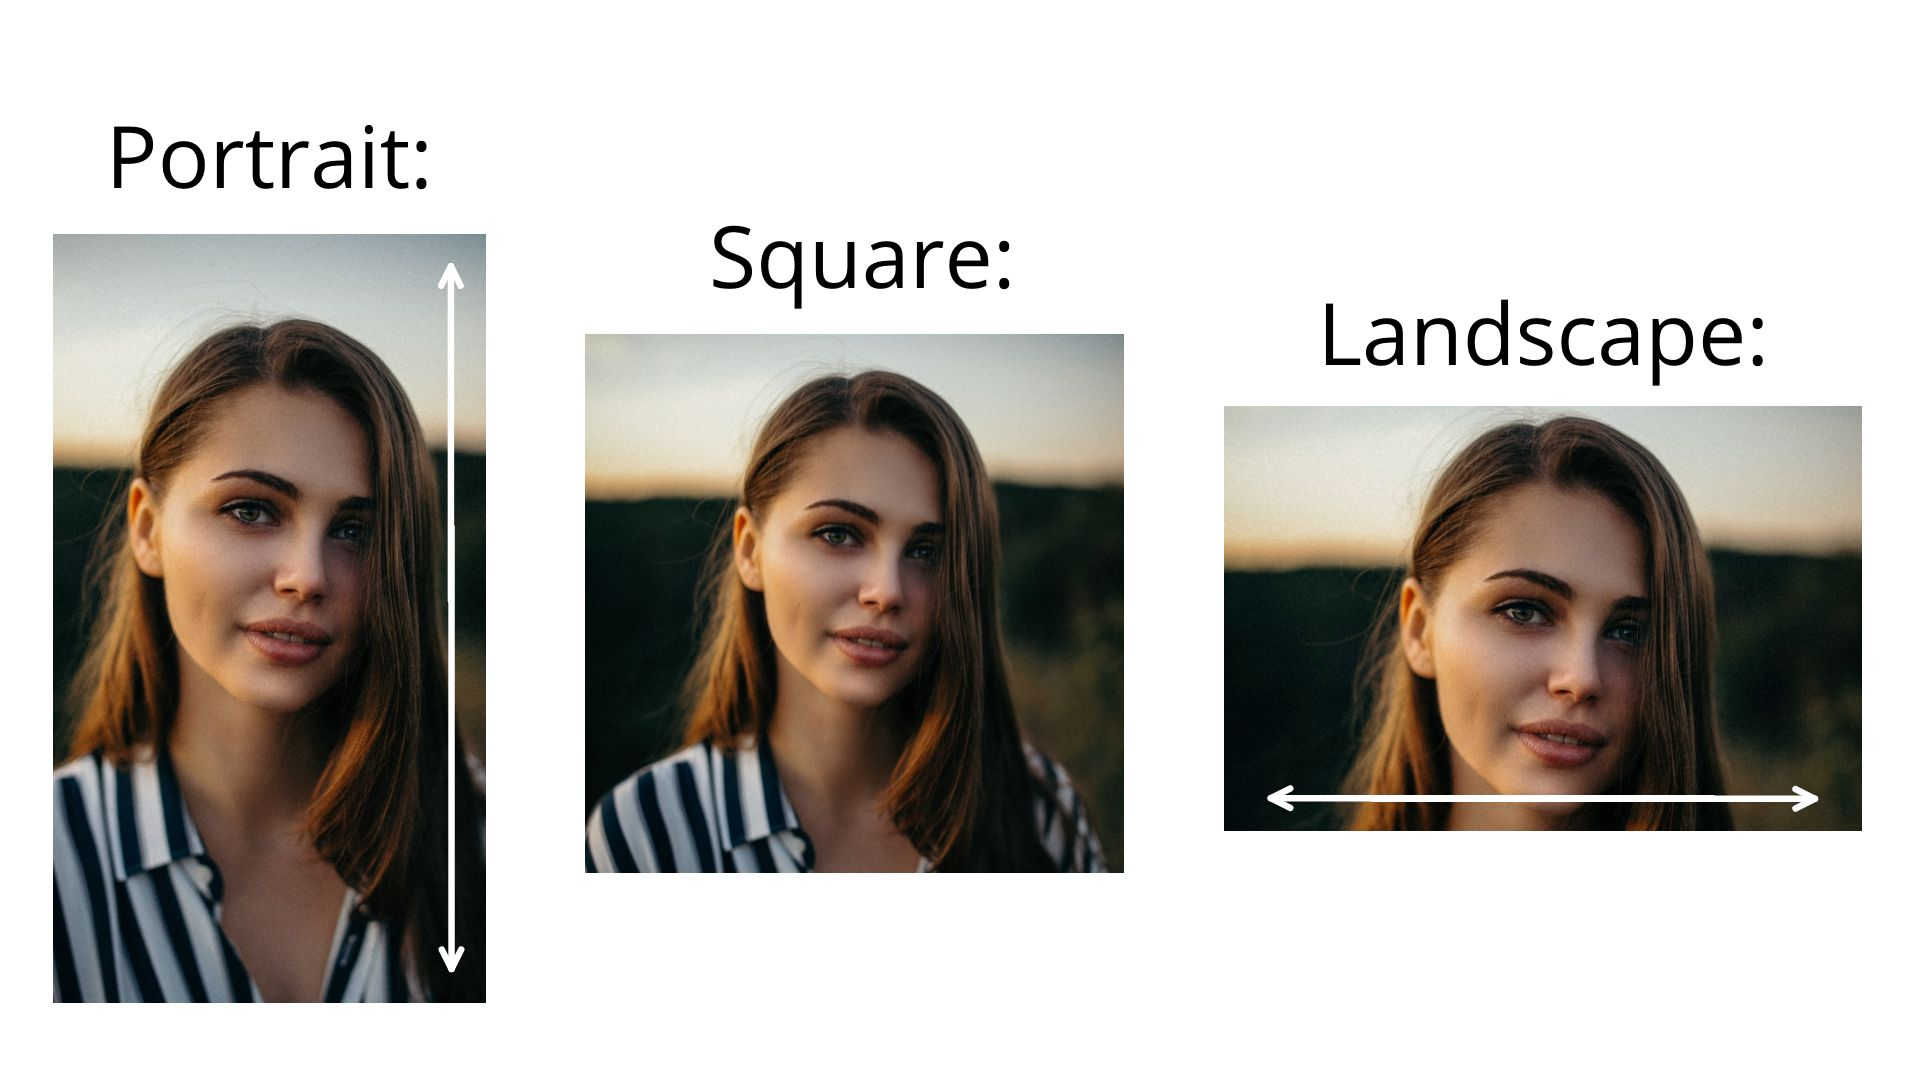 Examples of portrait, square, and landscape photo orientations.